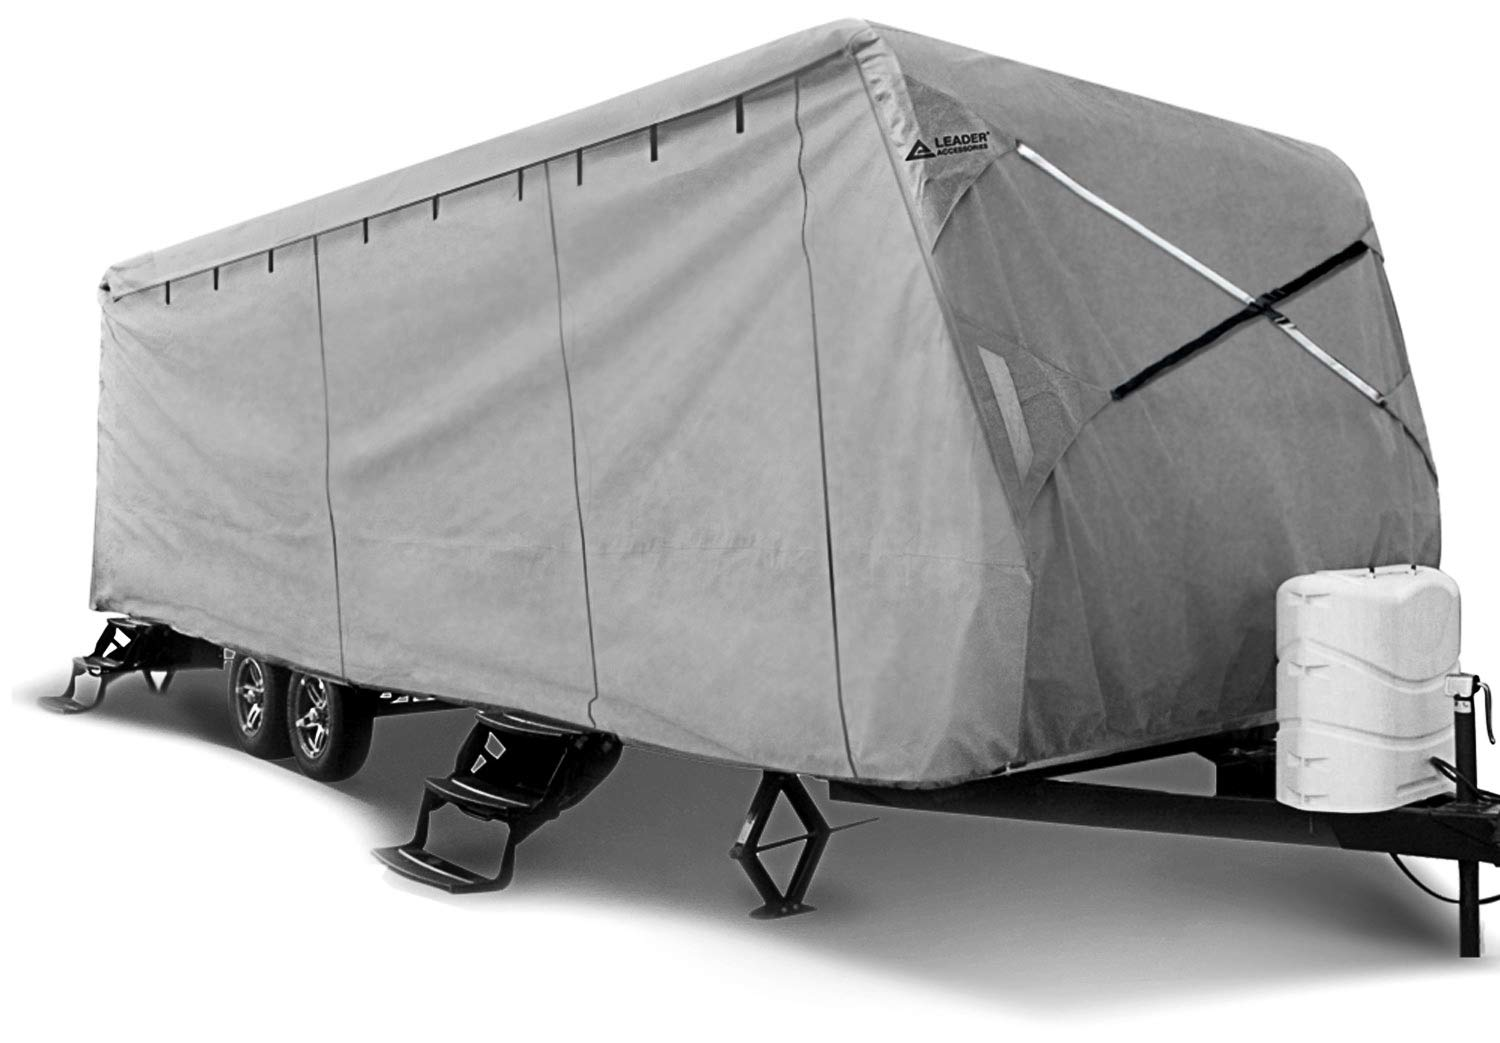 Leader Accessories Travel Trailer RV Cover Fits Camper 3 Layer Polypropylene Outdoor Protect (Fits 14'-16', Grey)